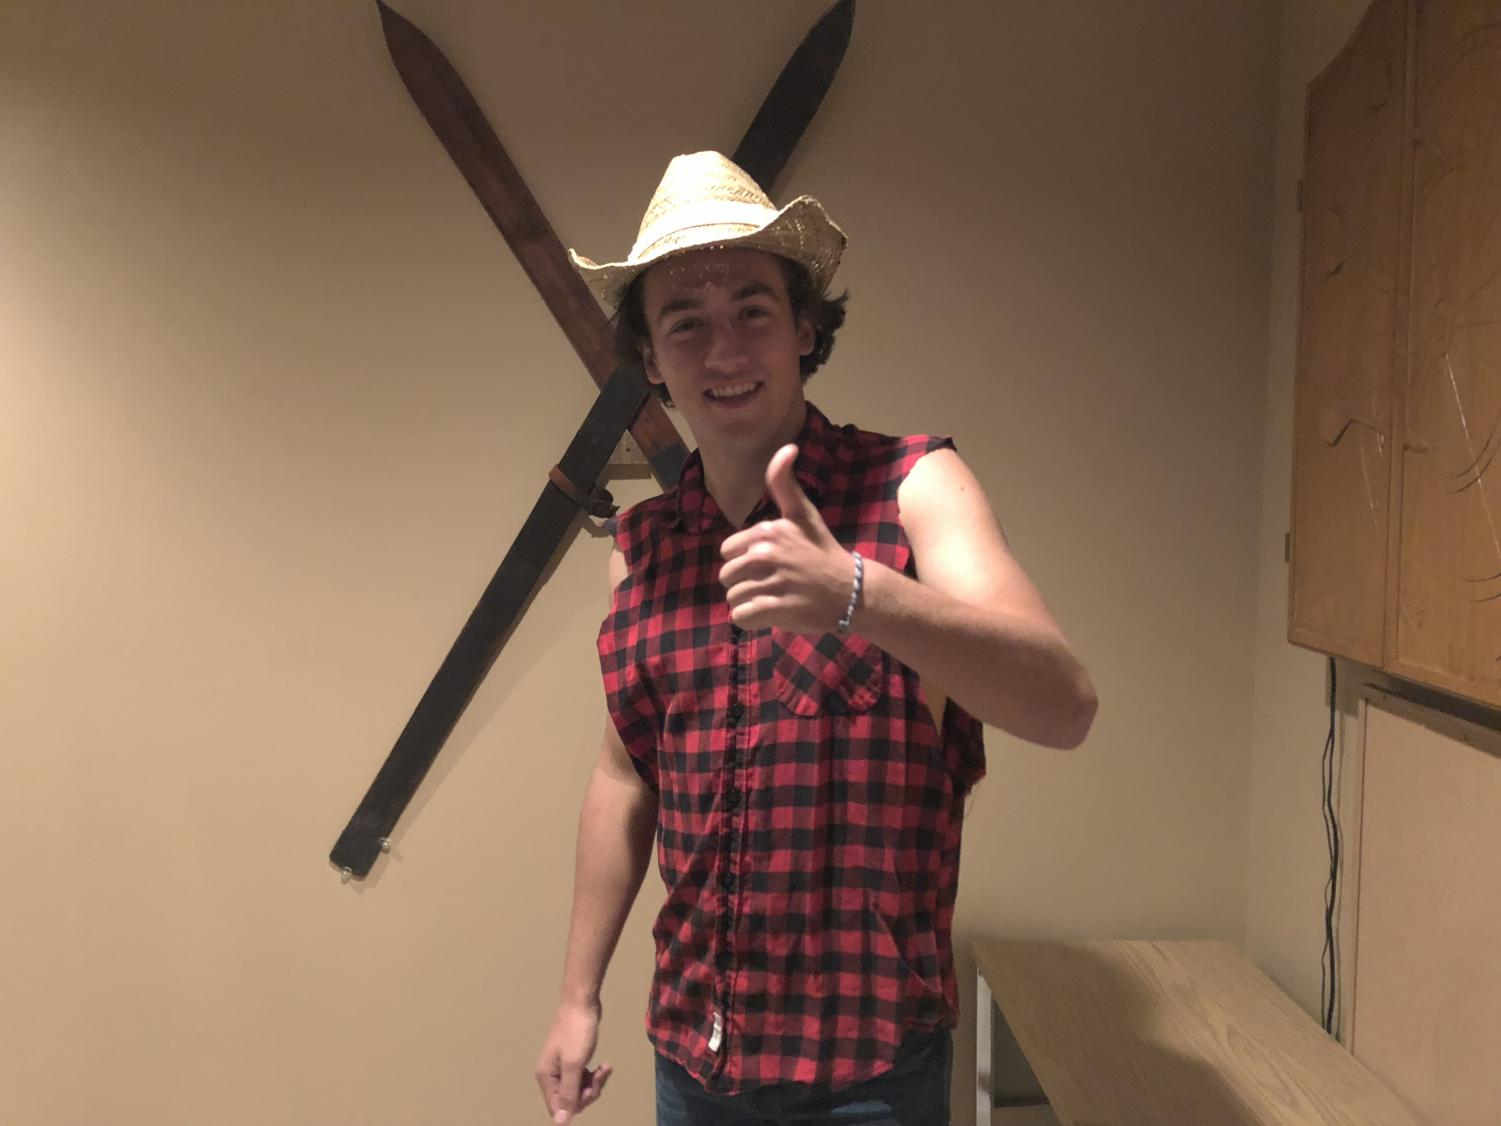 Senior Louis Hyde dresses up as cowboy for Halloween this year.